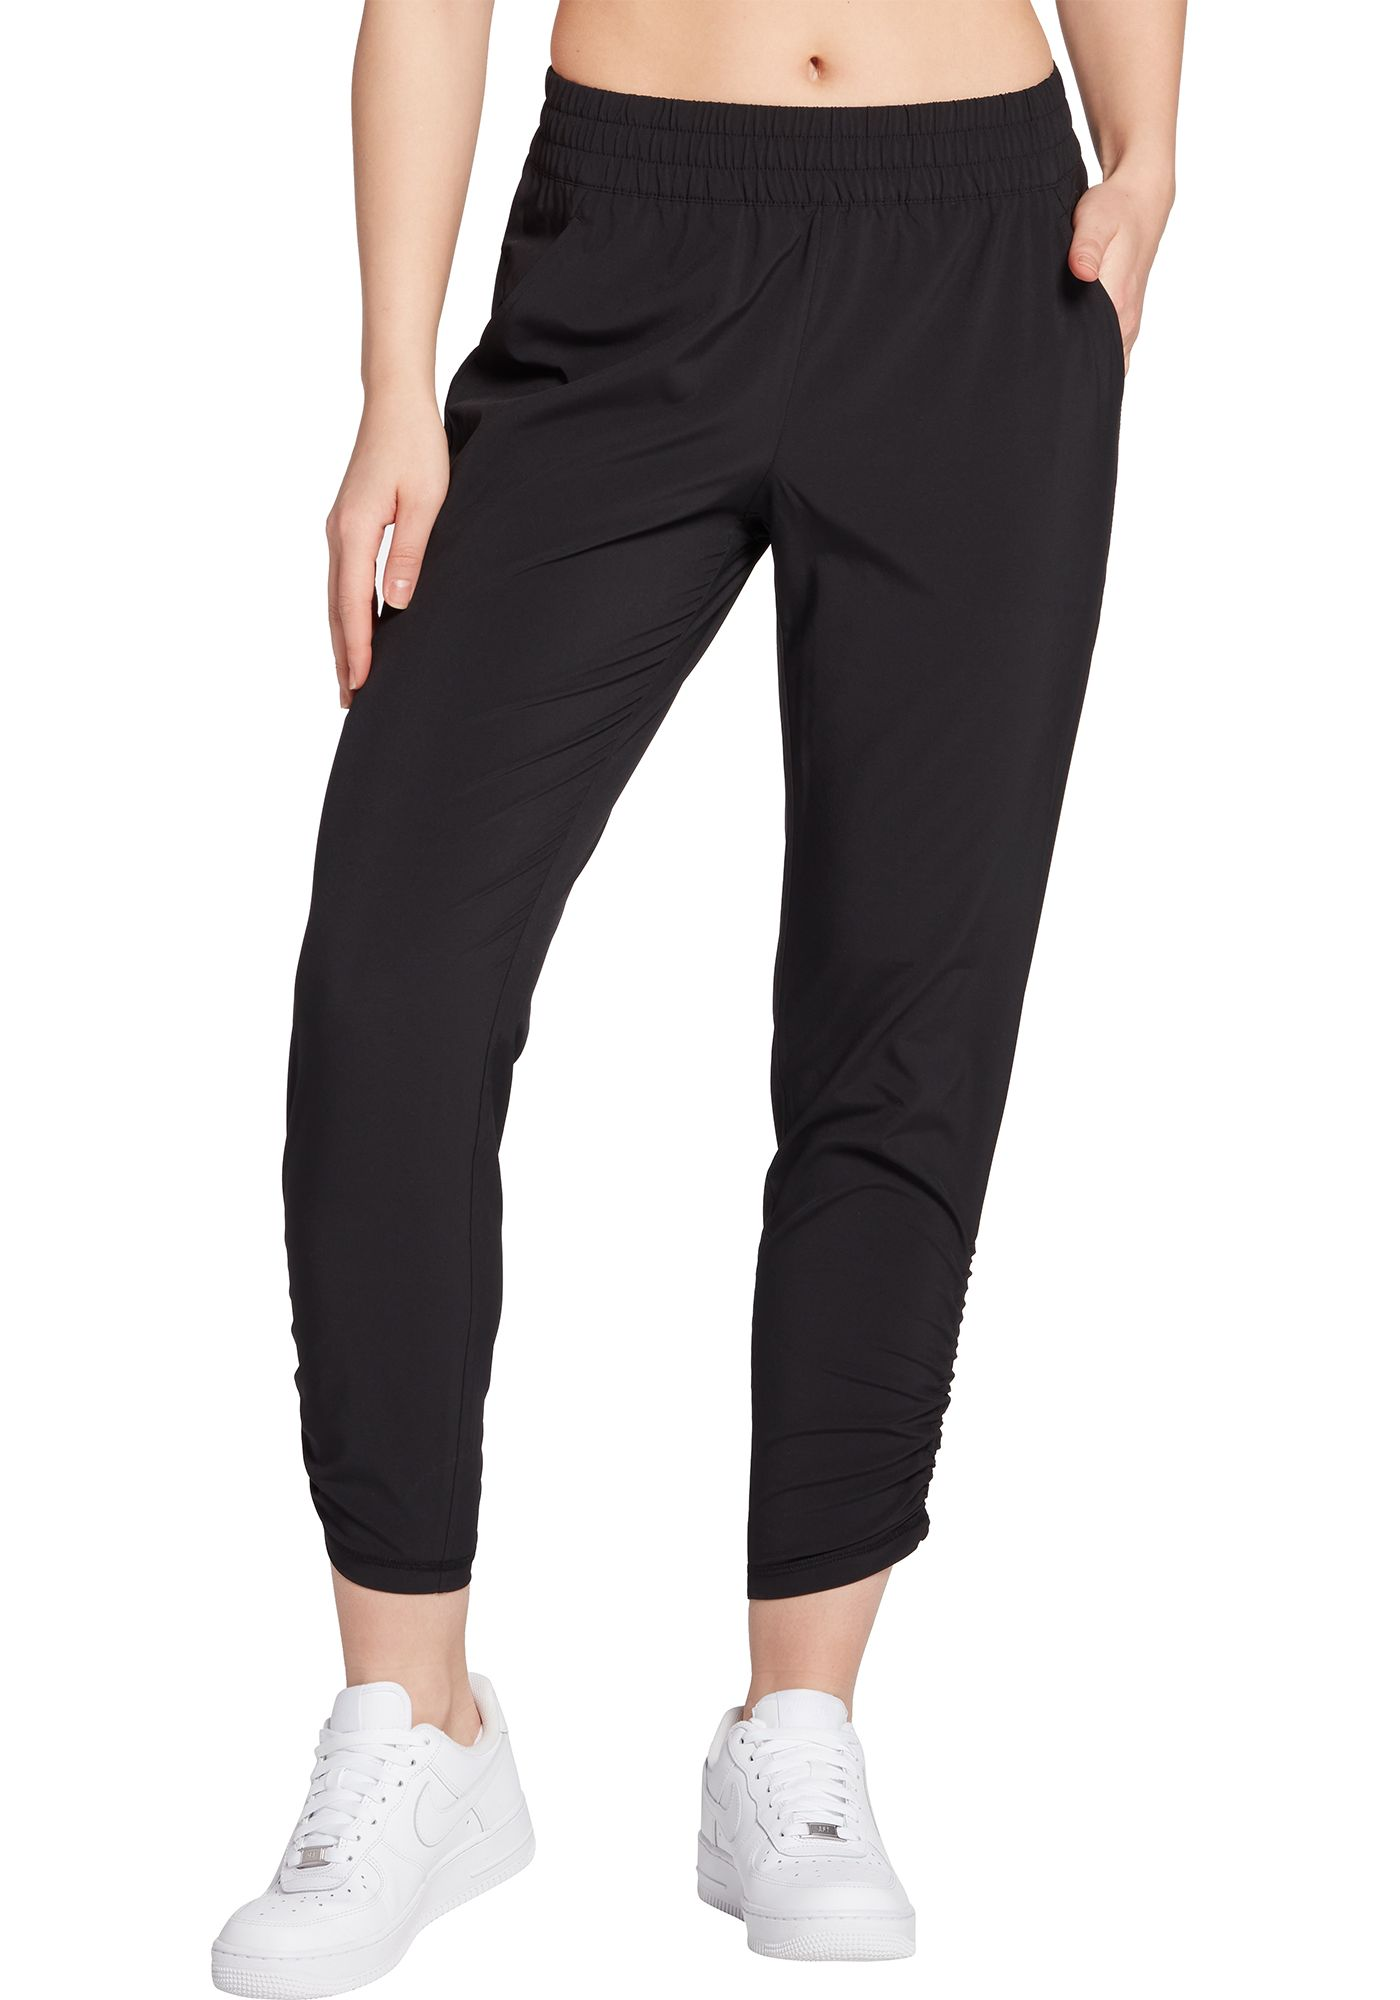 CALIA by Carrie Underwood Women's Journey Ruched Cropped Pants